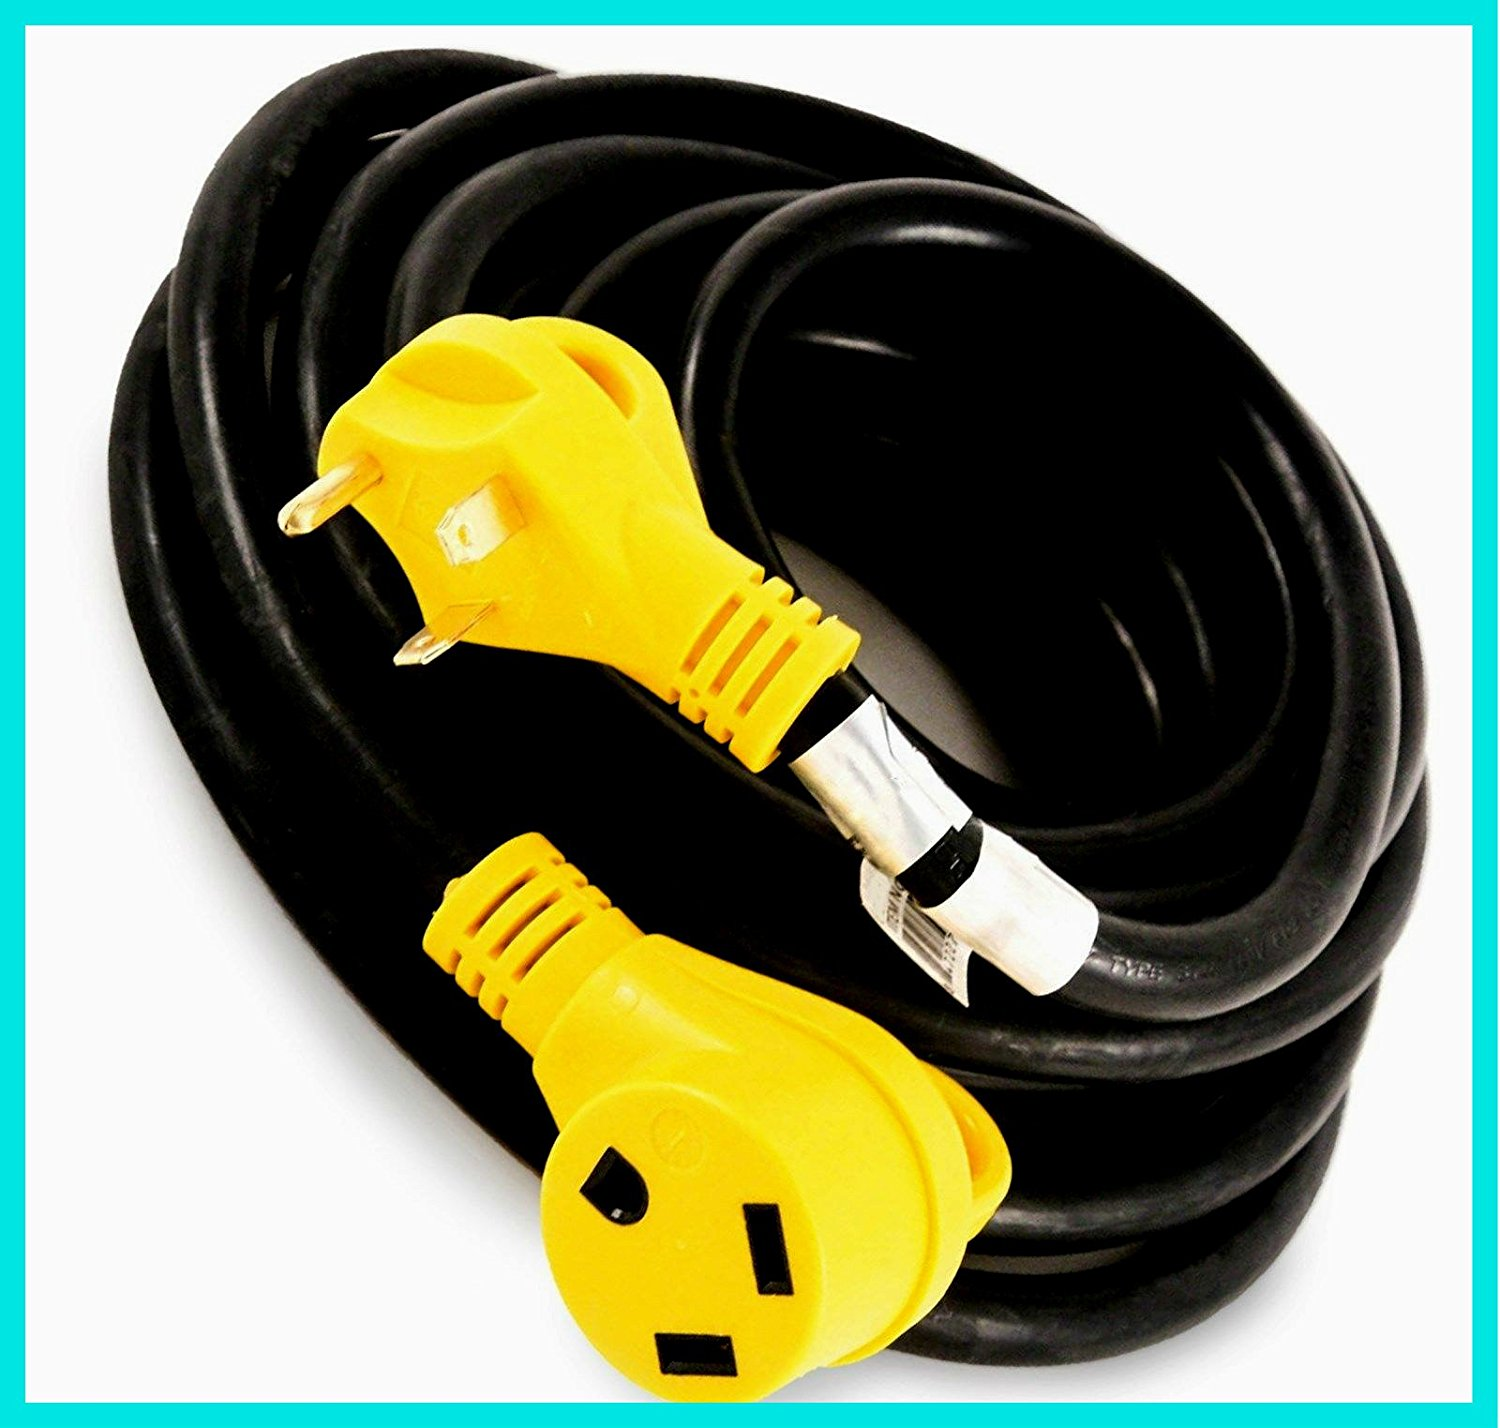 Buy Power Adapter Cable Extension Cord 100 Copper Wiring 30a A Trailer Camper 25 Ft 30 Amp